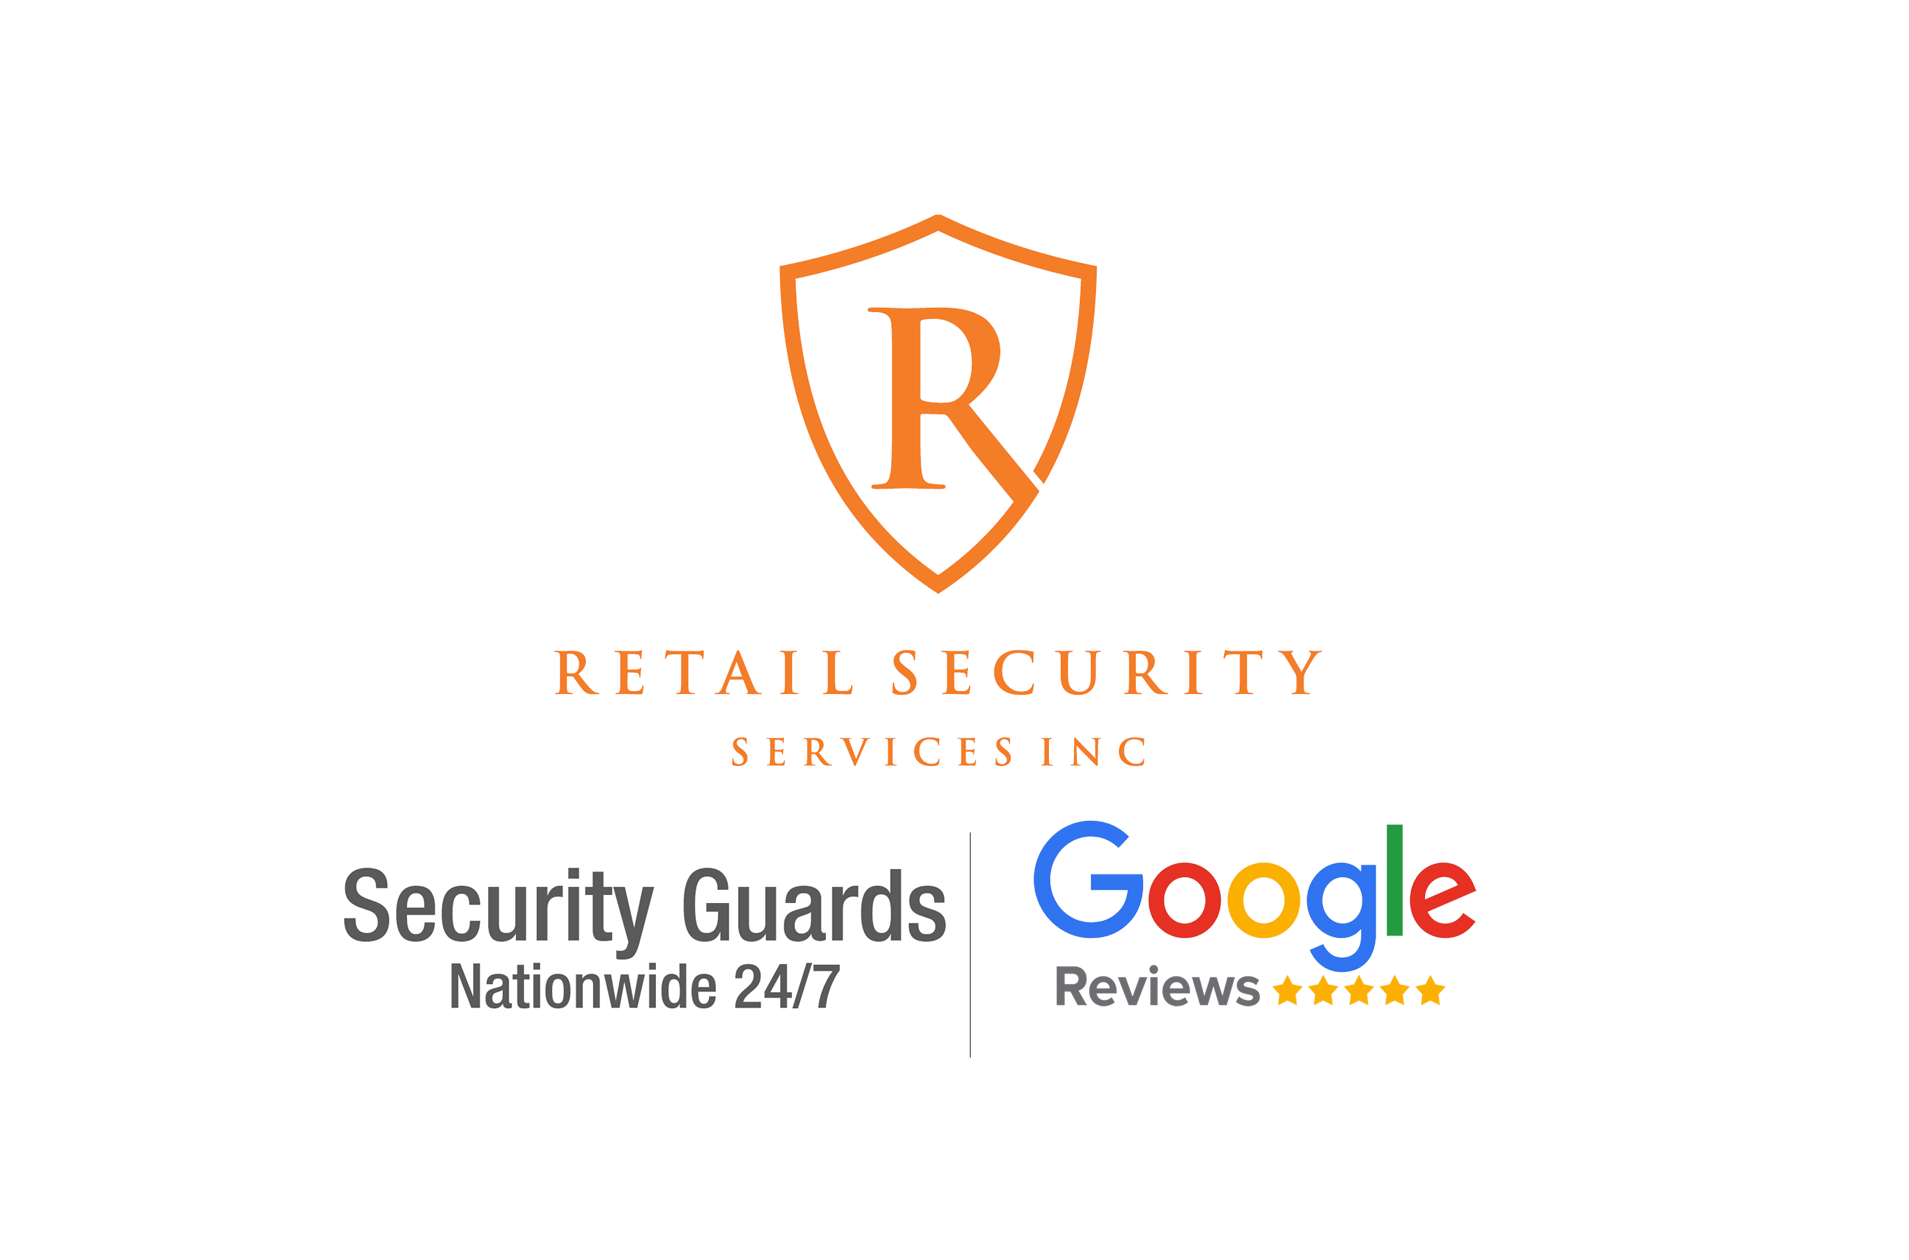 Security Guards - 5 STAR GOOGLE RATING